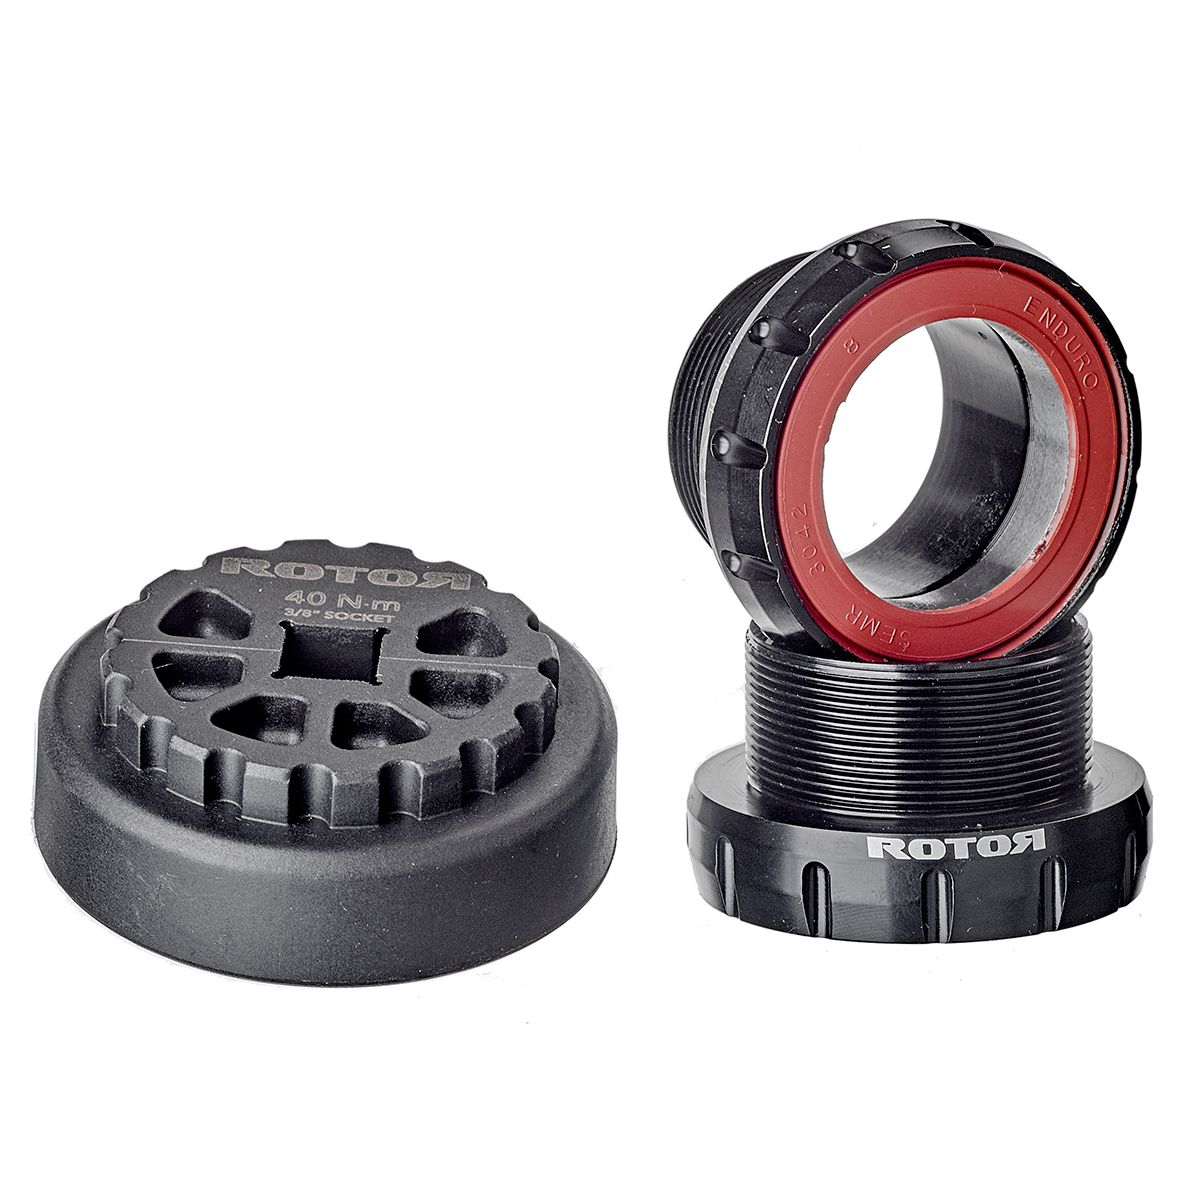 BB30/ITA30 bottom bracket cups